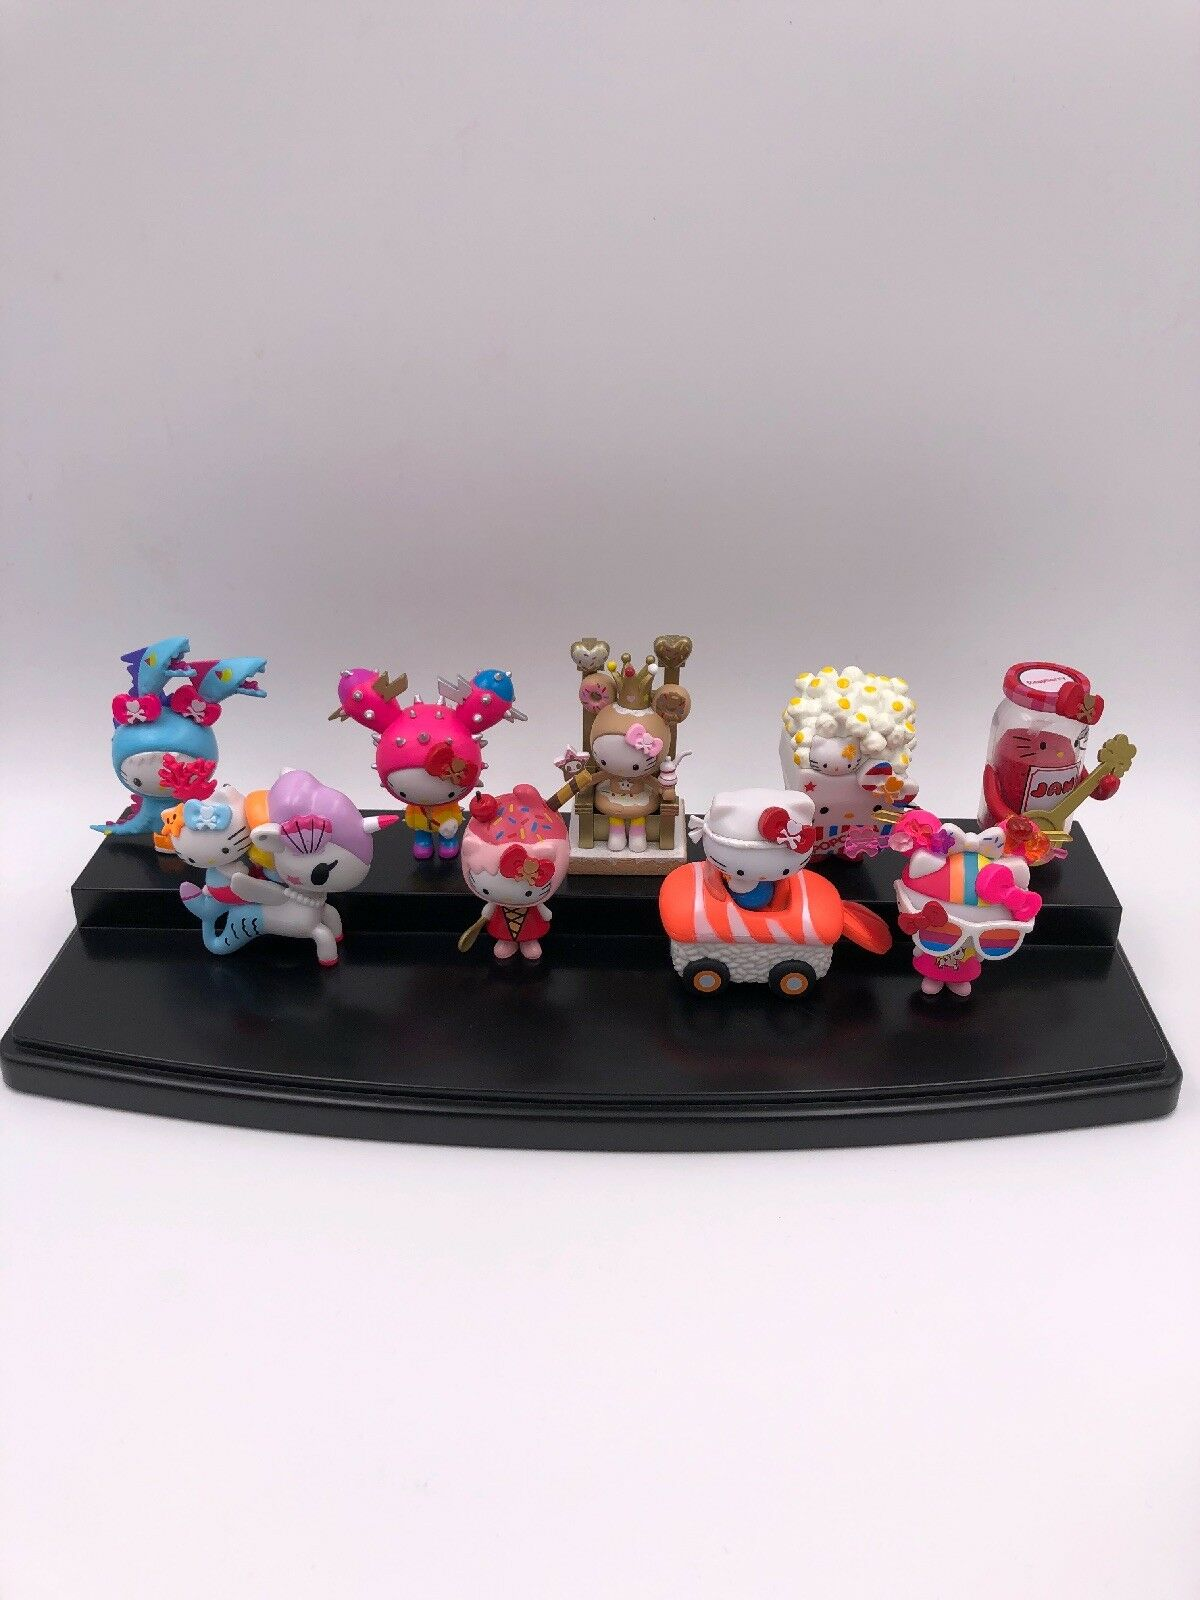 Tokidoki x Hello Kitty Series 2 Blind Box: Set of 9 Without Chaser